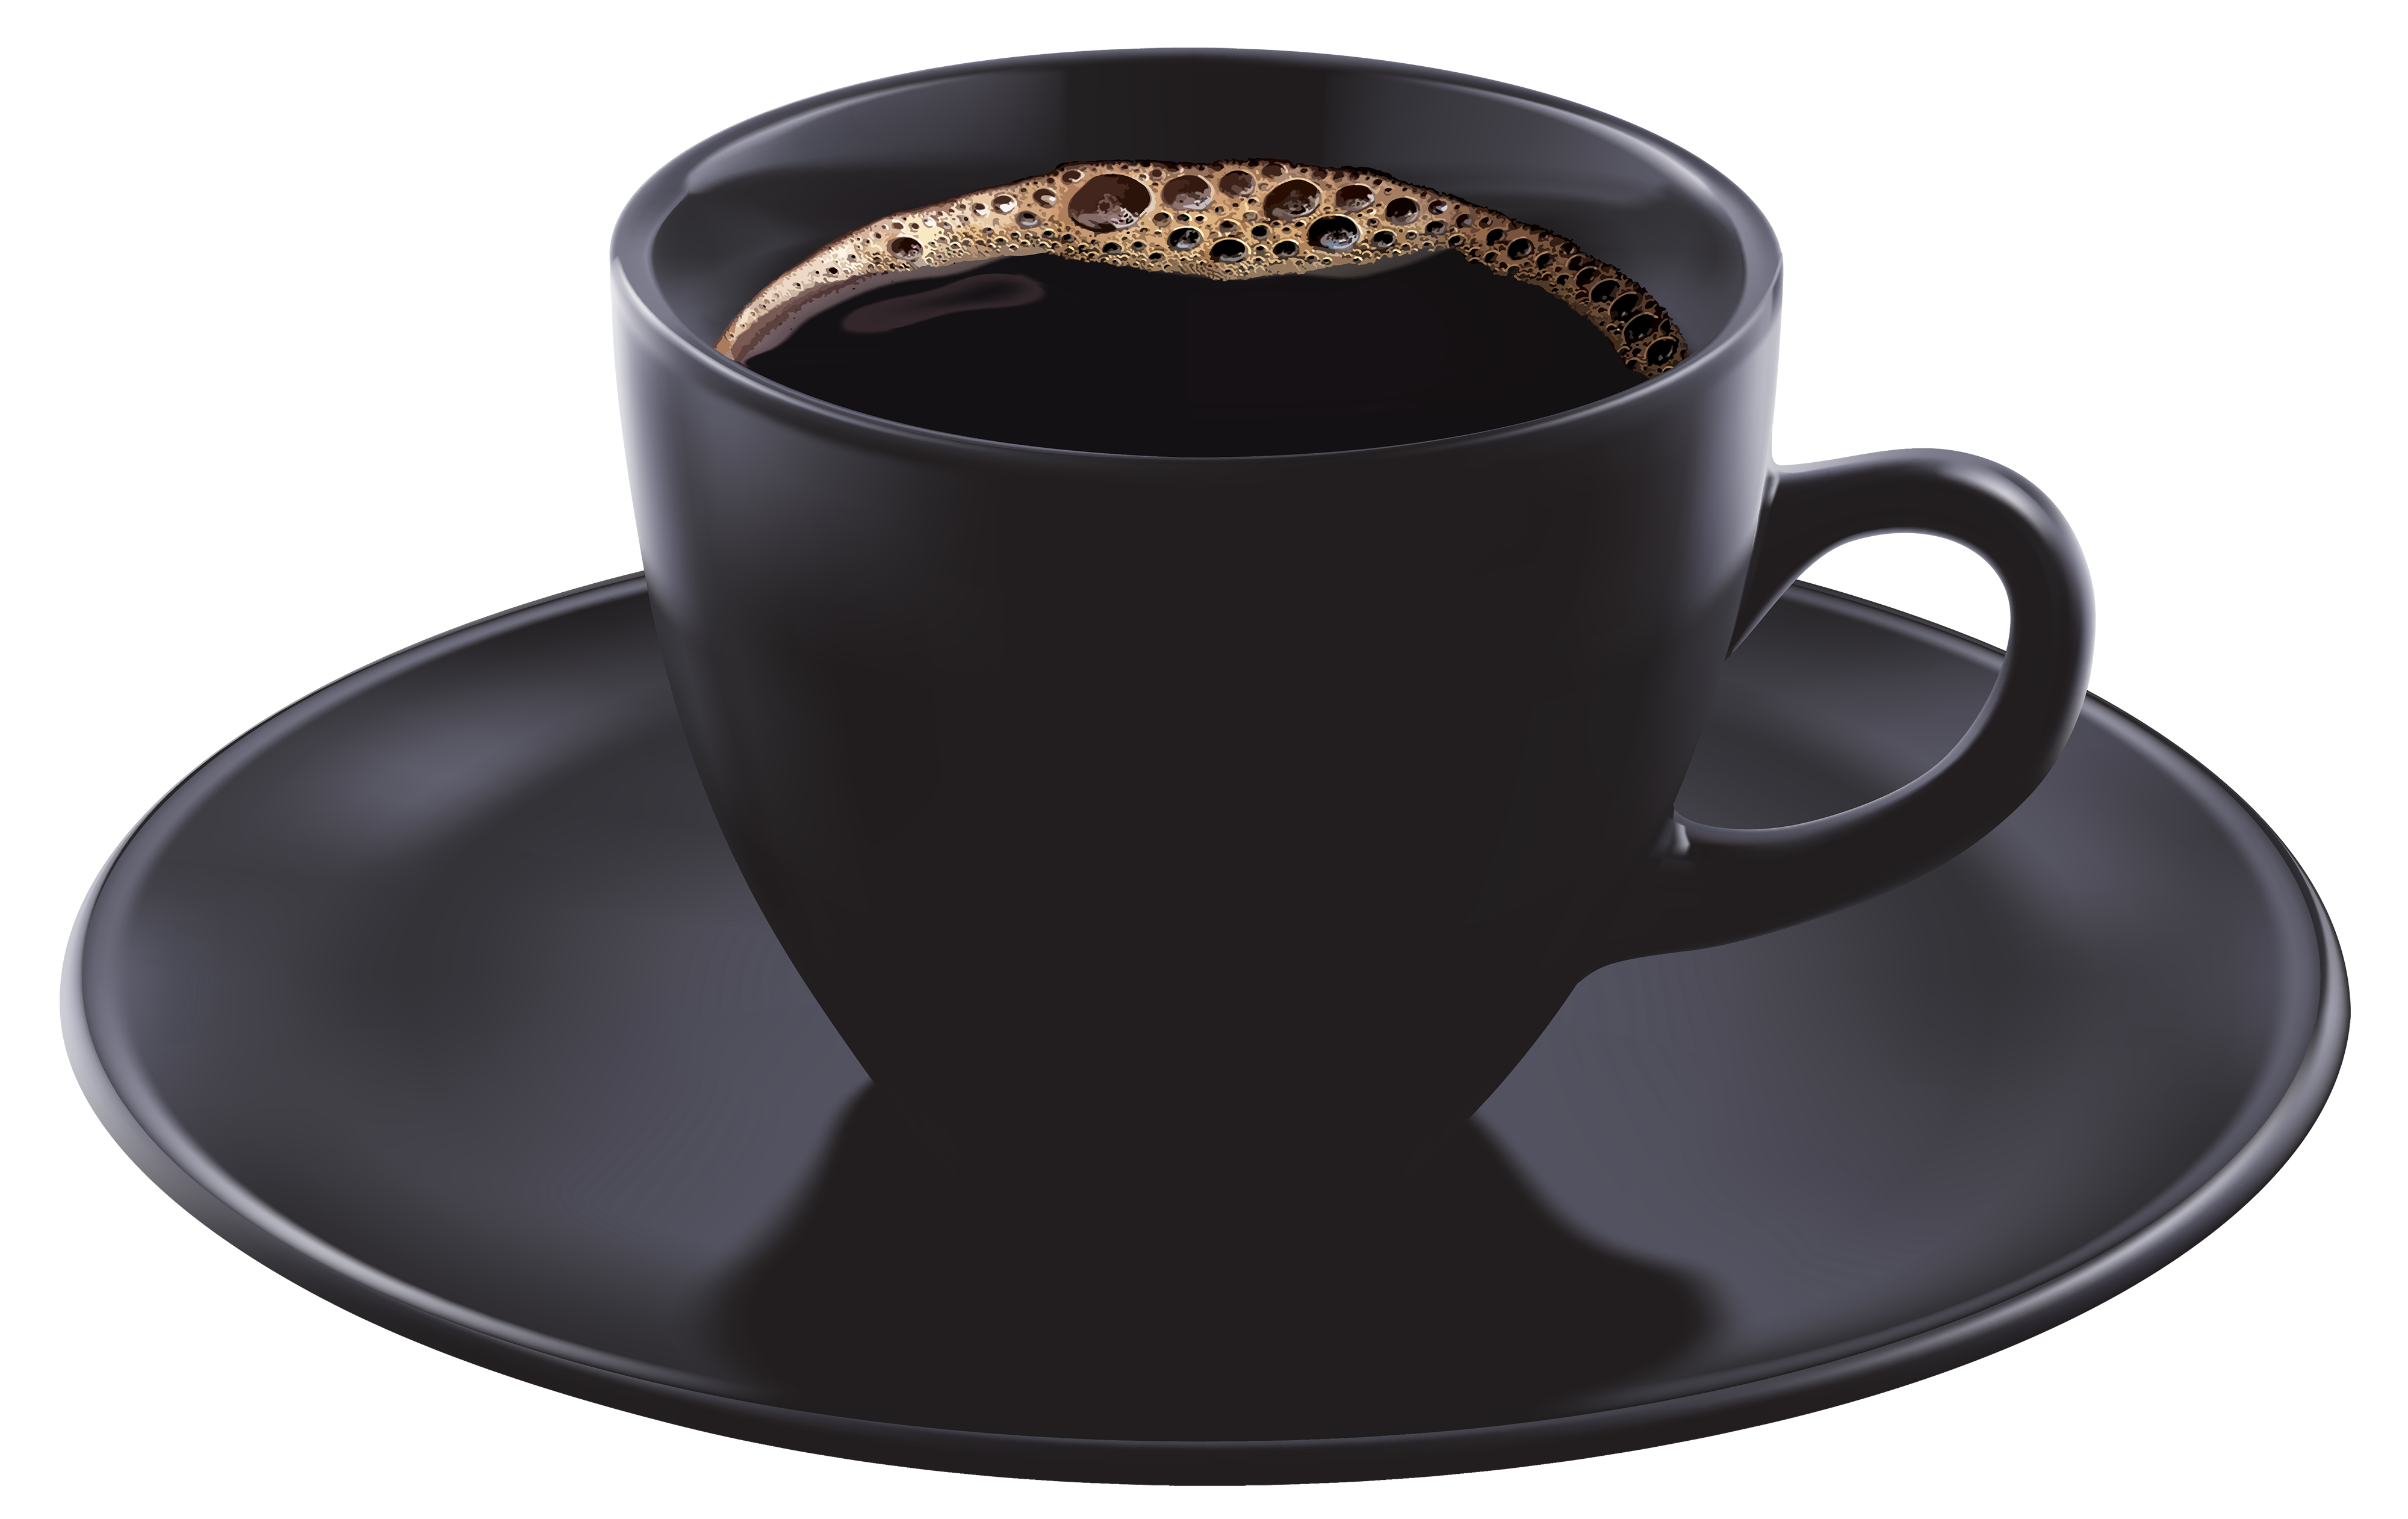 Black Coffee Cup PNG Clipart Image.